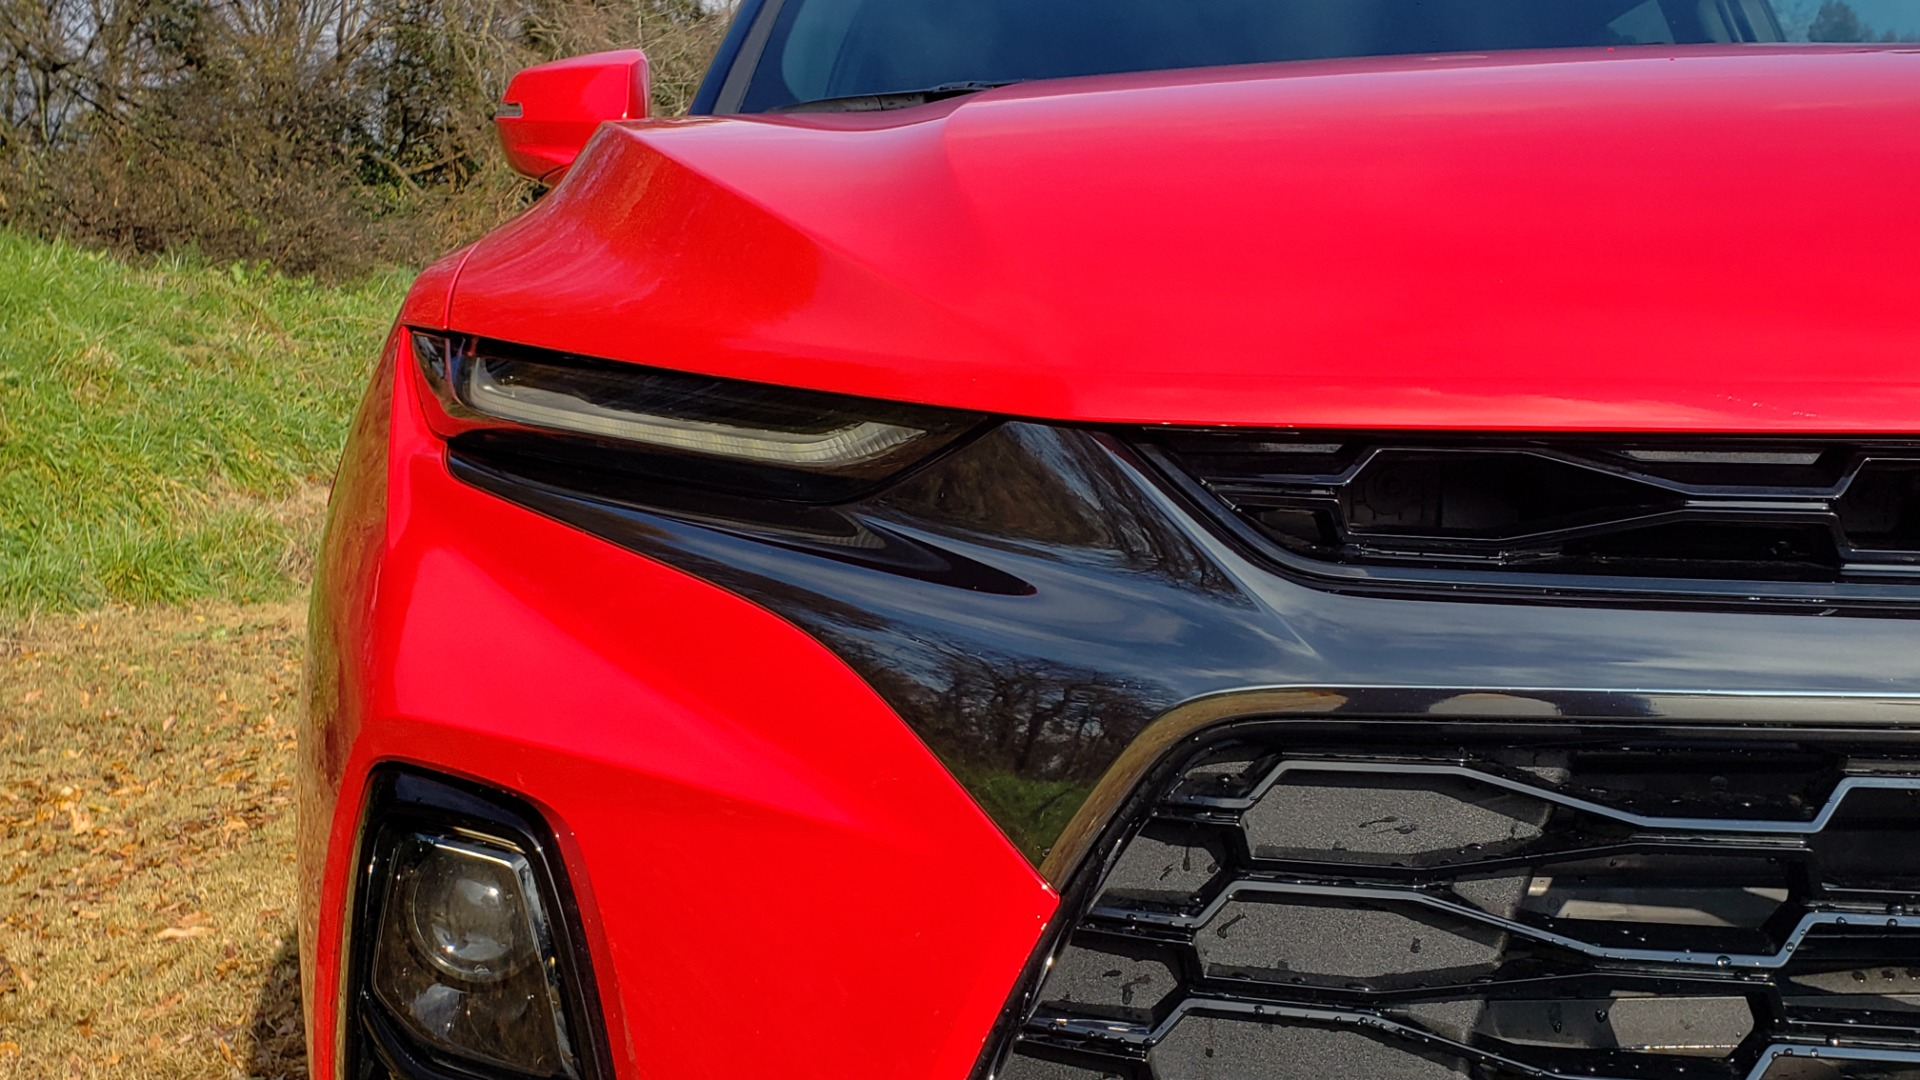 Used 2020 Chevrolet BLAZER RS / 3.6L V6 / 9-SPD AUTO / NAV / BOSE / HTD STS / REARVIEW for sale Sold at Formula Imports in Charlotte NC 28227 11